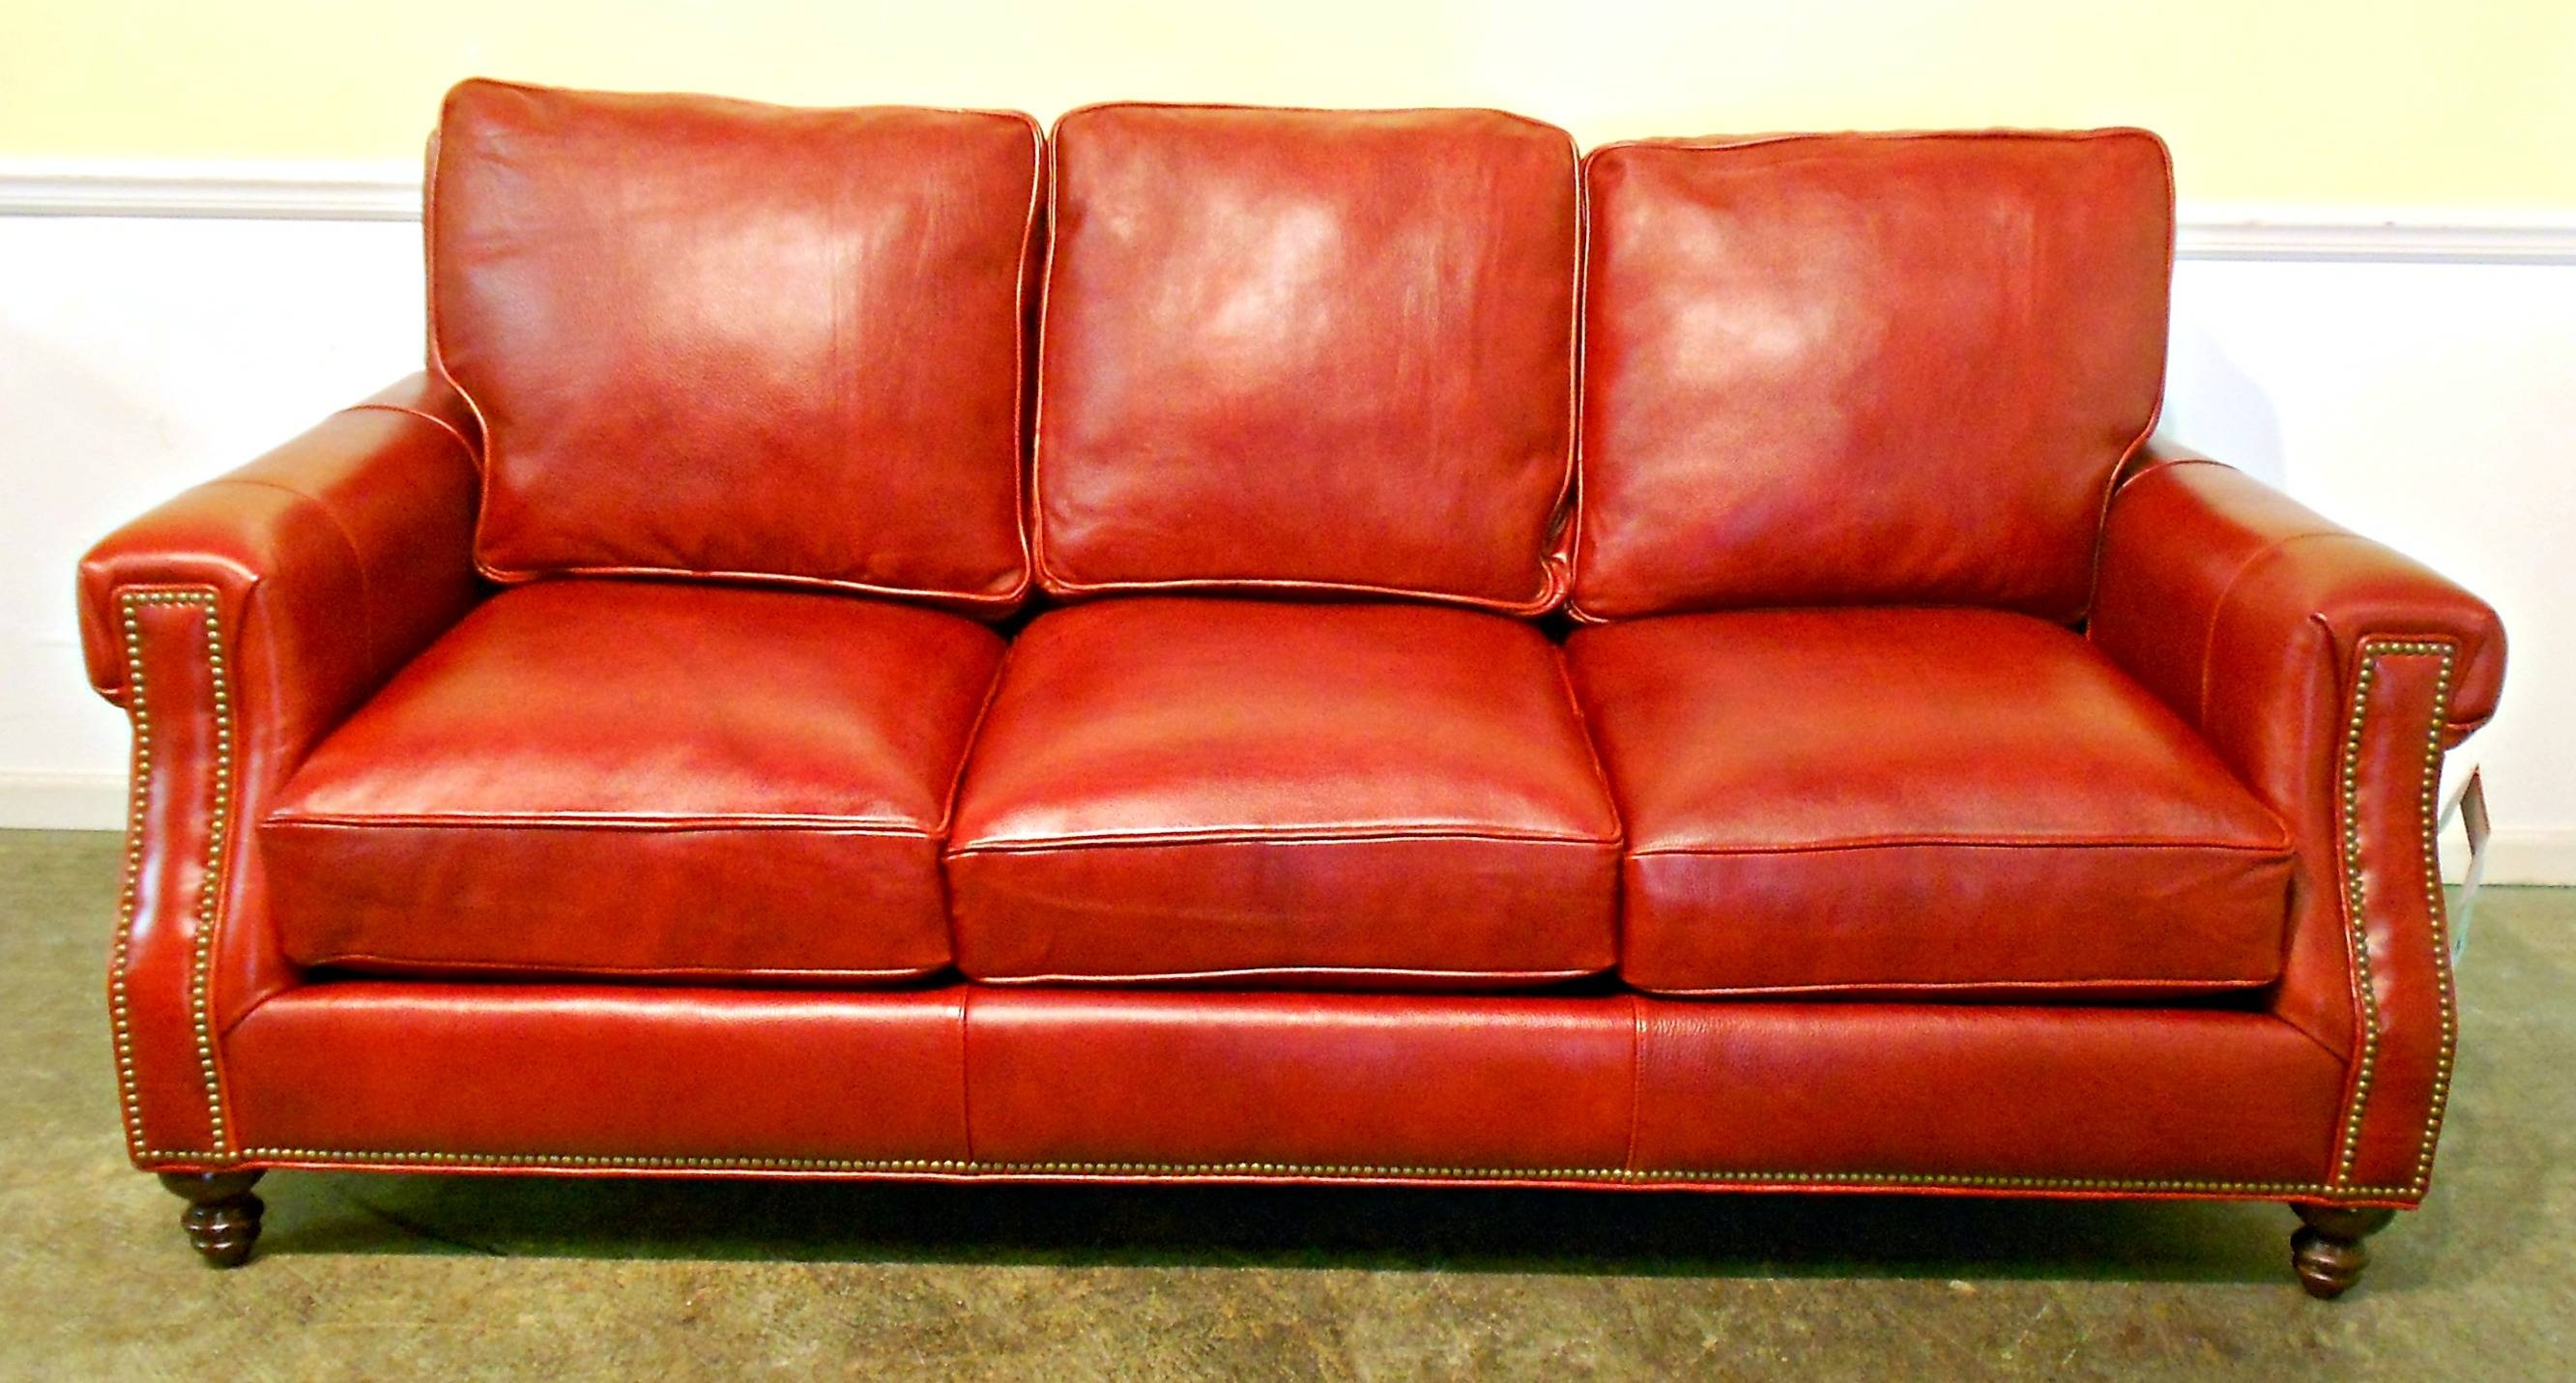 match es size ikea sectional for italian sagood leather couch to macys bed sale rust orange sofa curtains burnt decorating full of